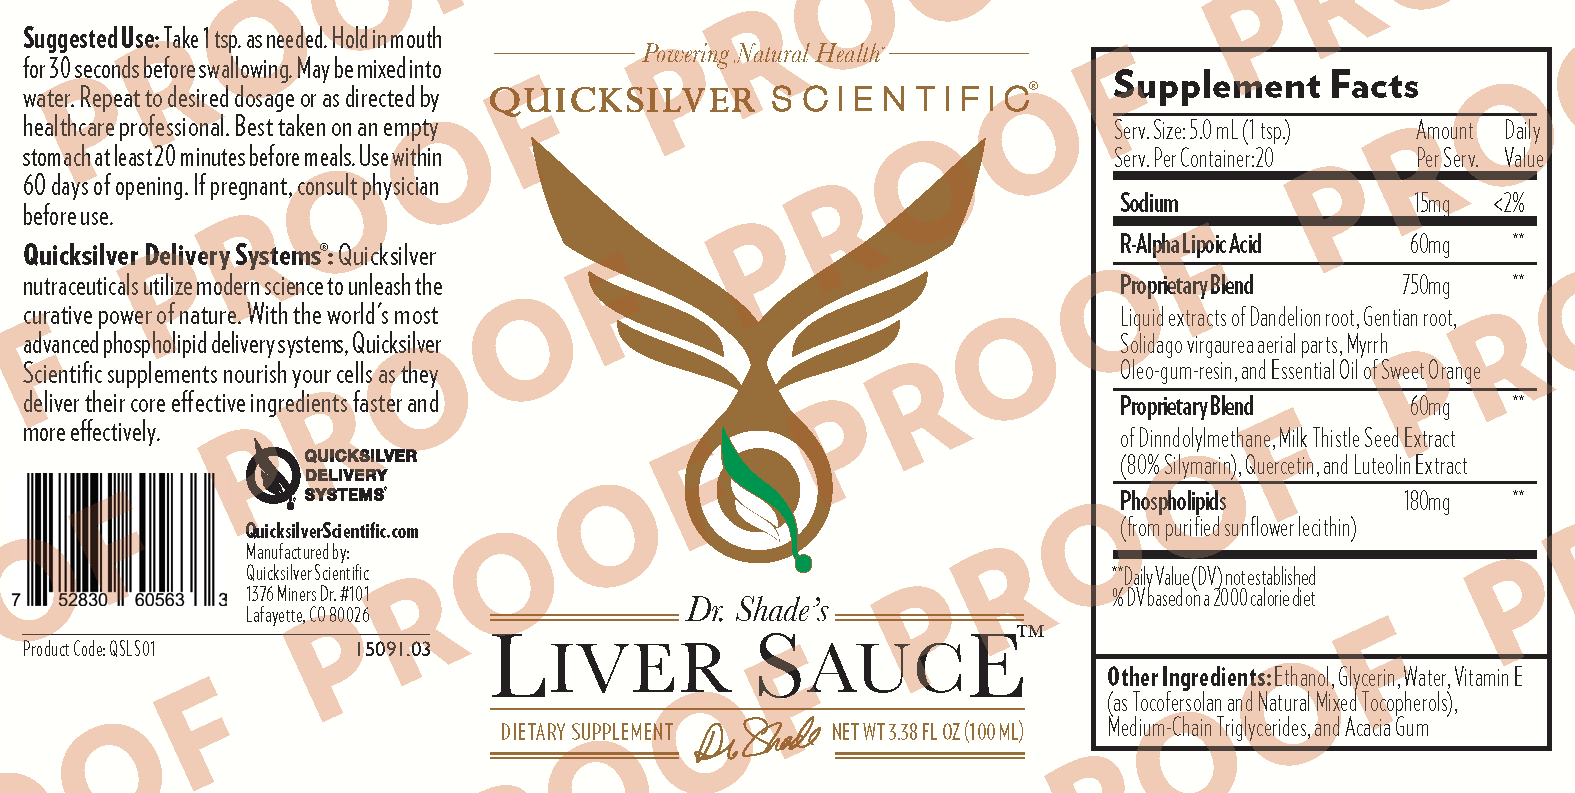 Liver Sauce 100ml Herbal Line 1509103 Nordic GLA 400 mg 4 oz